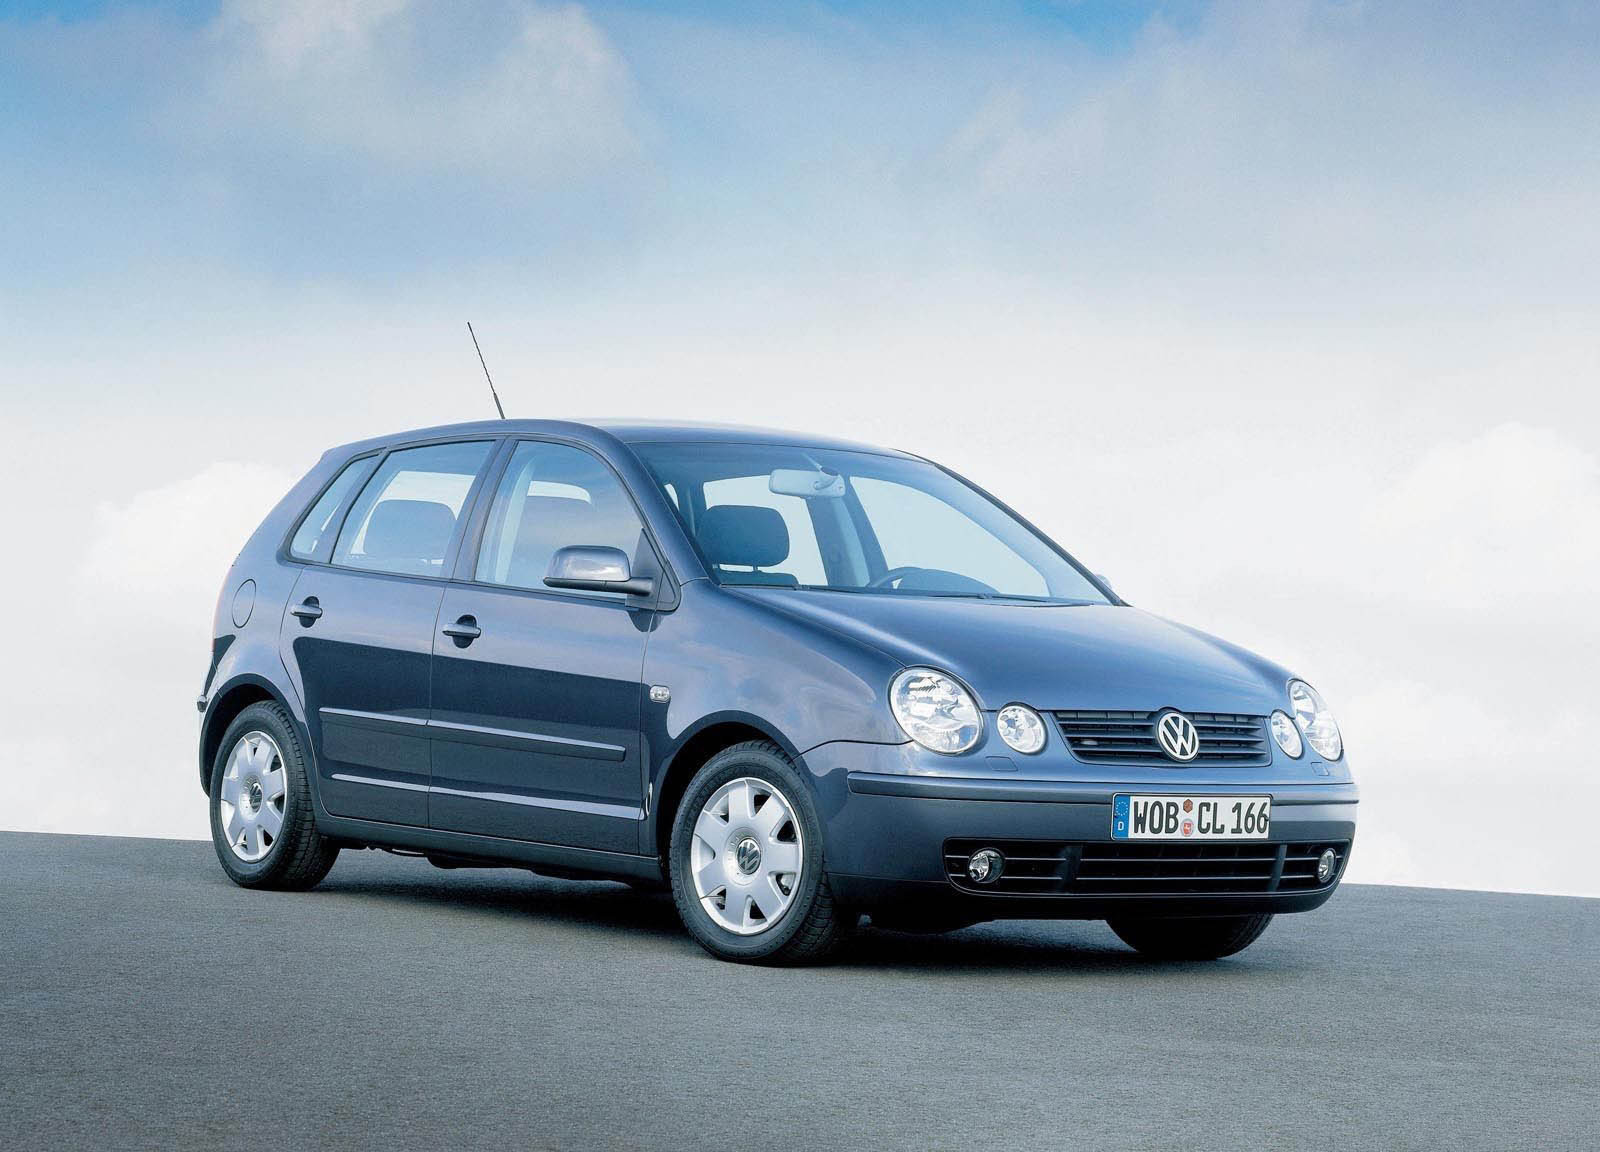 2005 volkswagen polo picture 17507 car review top speed. Black Bedroom Furniture Sets. Home Design Ideas